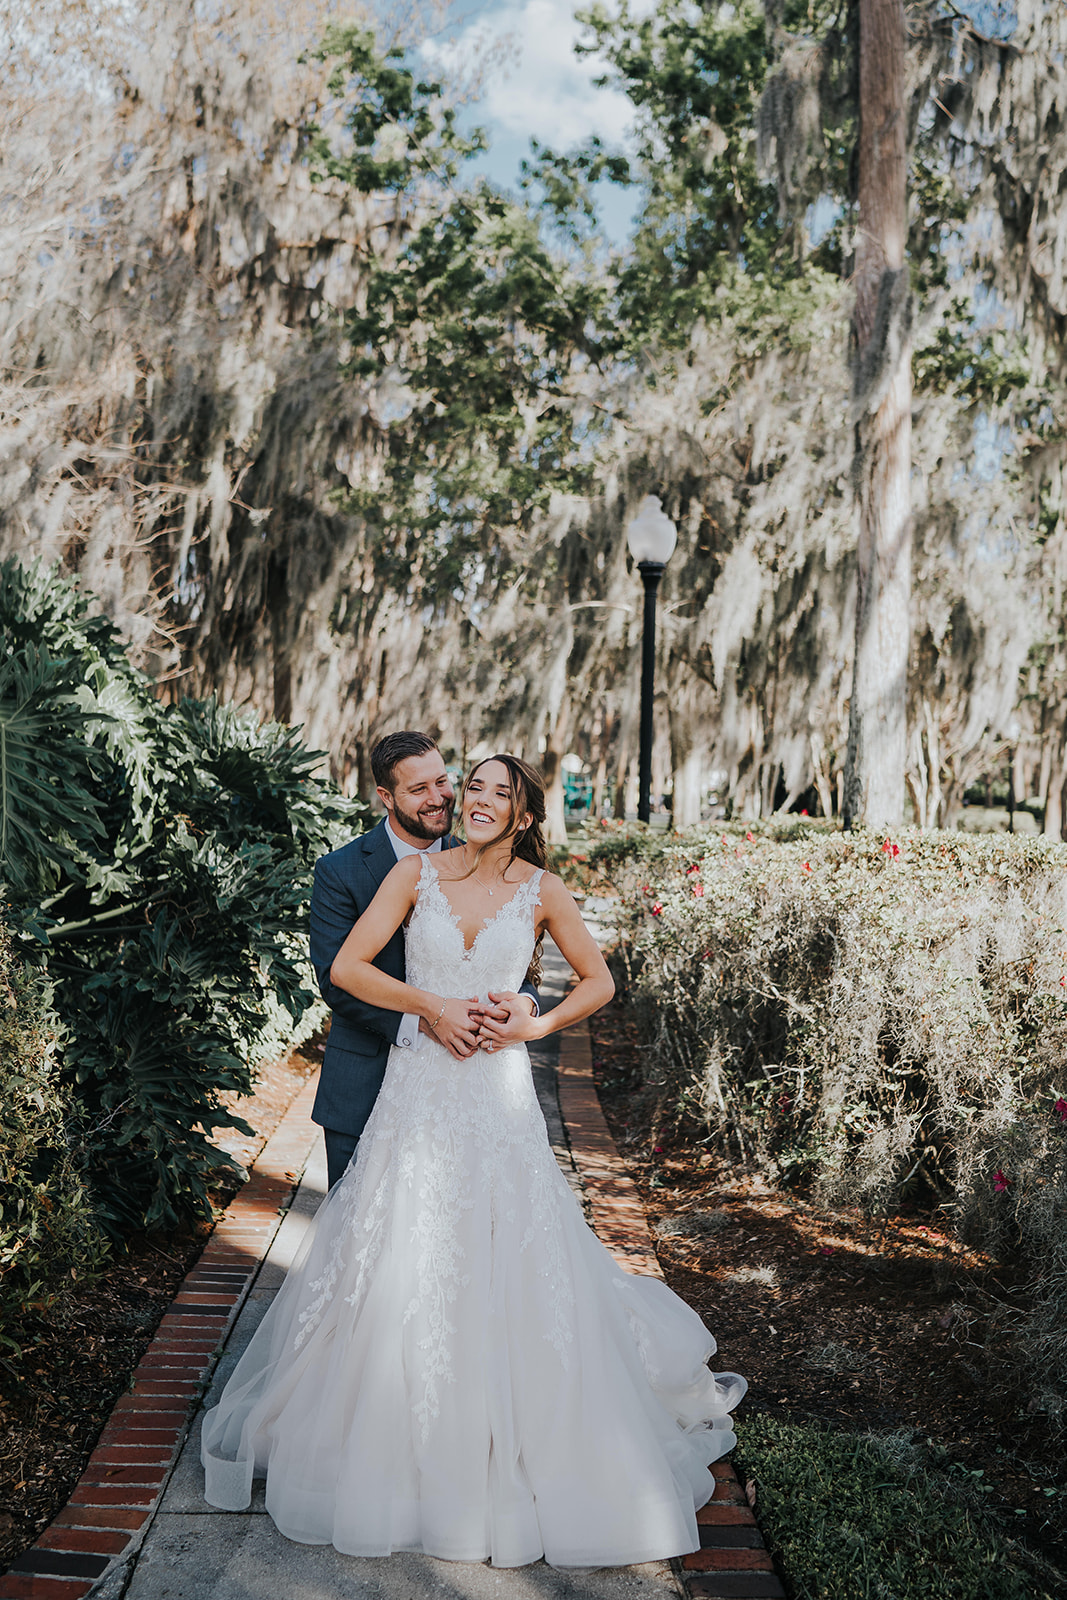 2019 March Troy and Kaitlyn Wedding Photos-0286.jpg